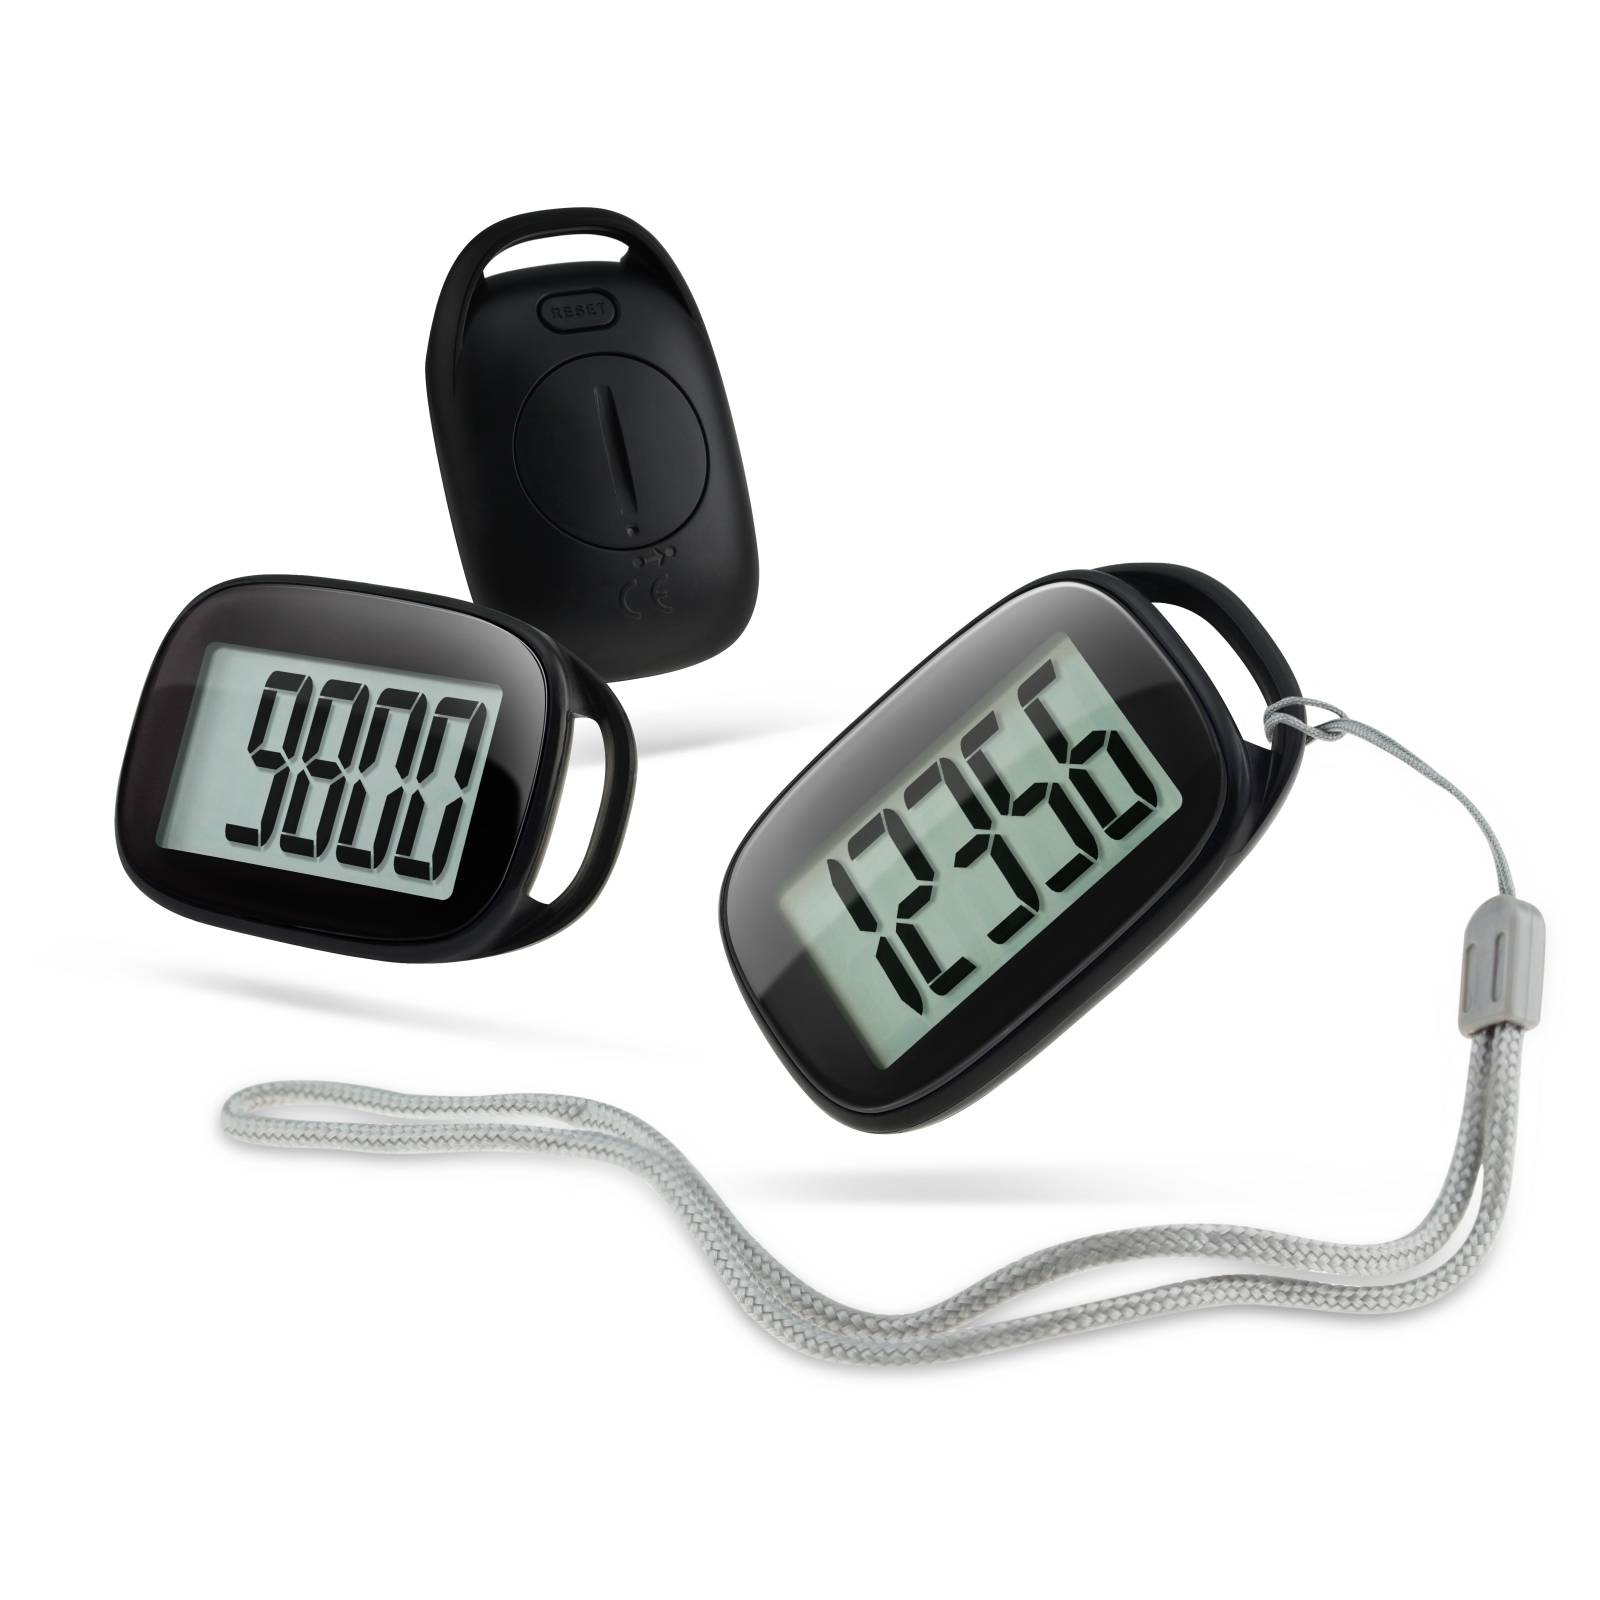 3D single function pedometer with hang rope